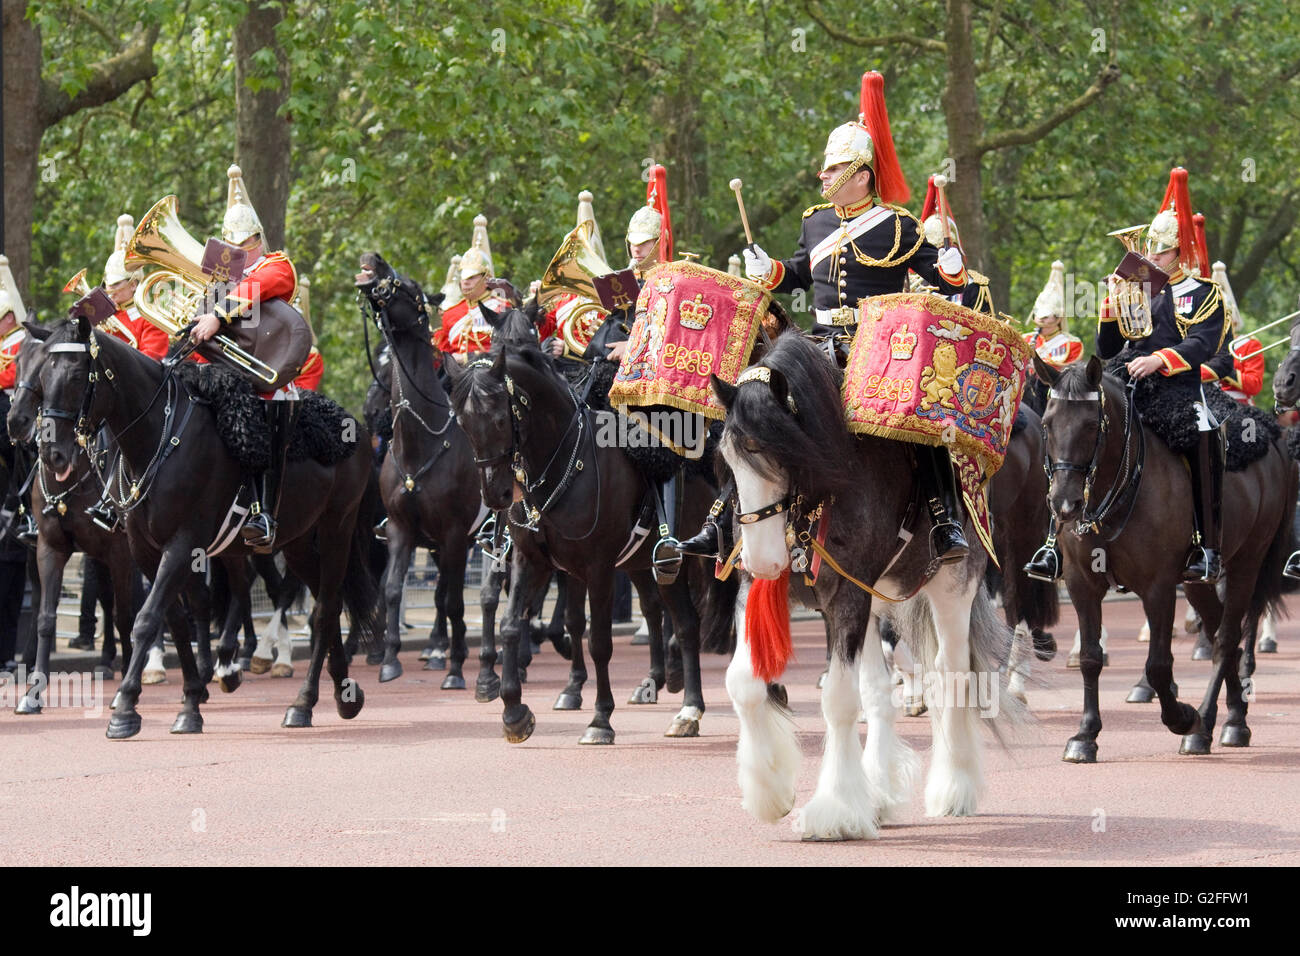 https://c8.alamy.com/comp/G2FFW1/band-of-the-household-cavalry-blues-and-royals-and-life-guards-royal-G2FFW1.jpg